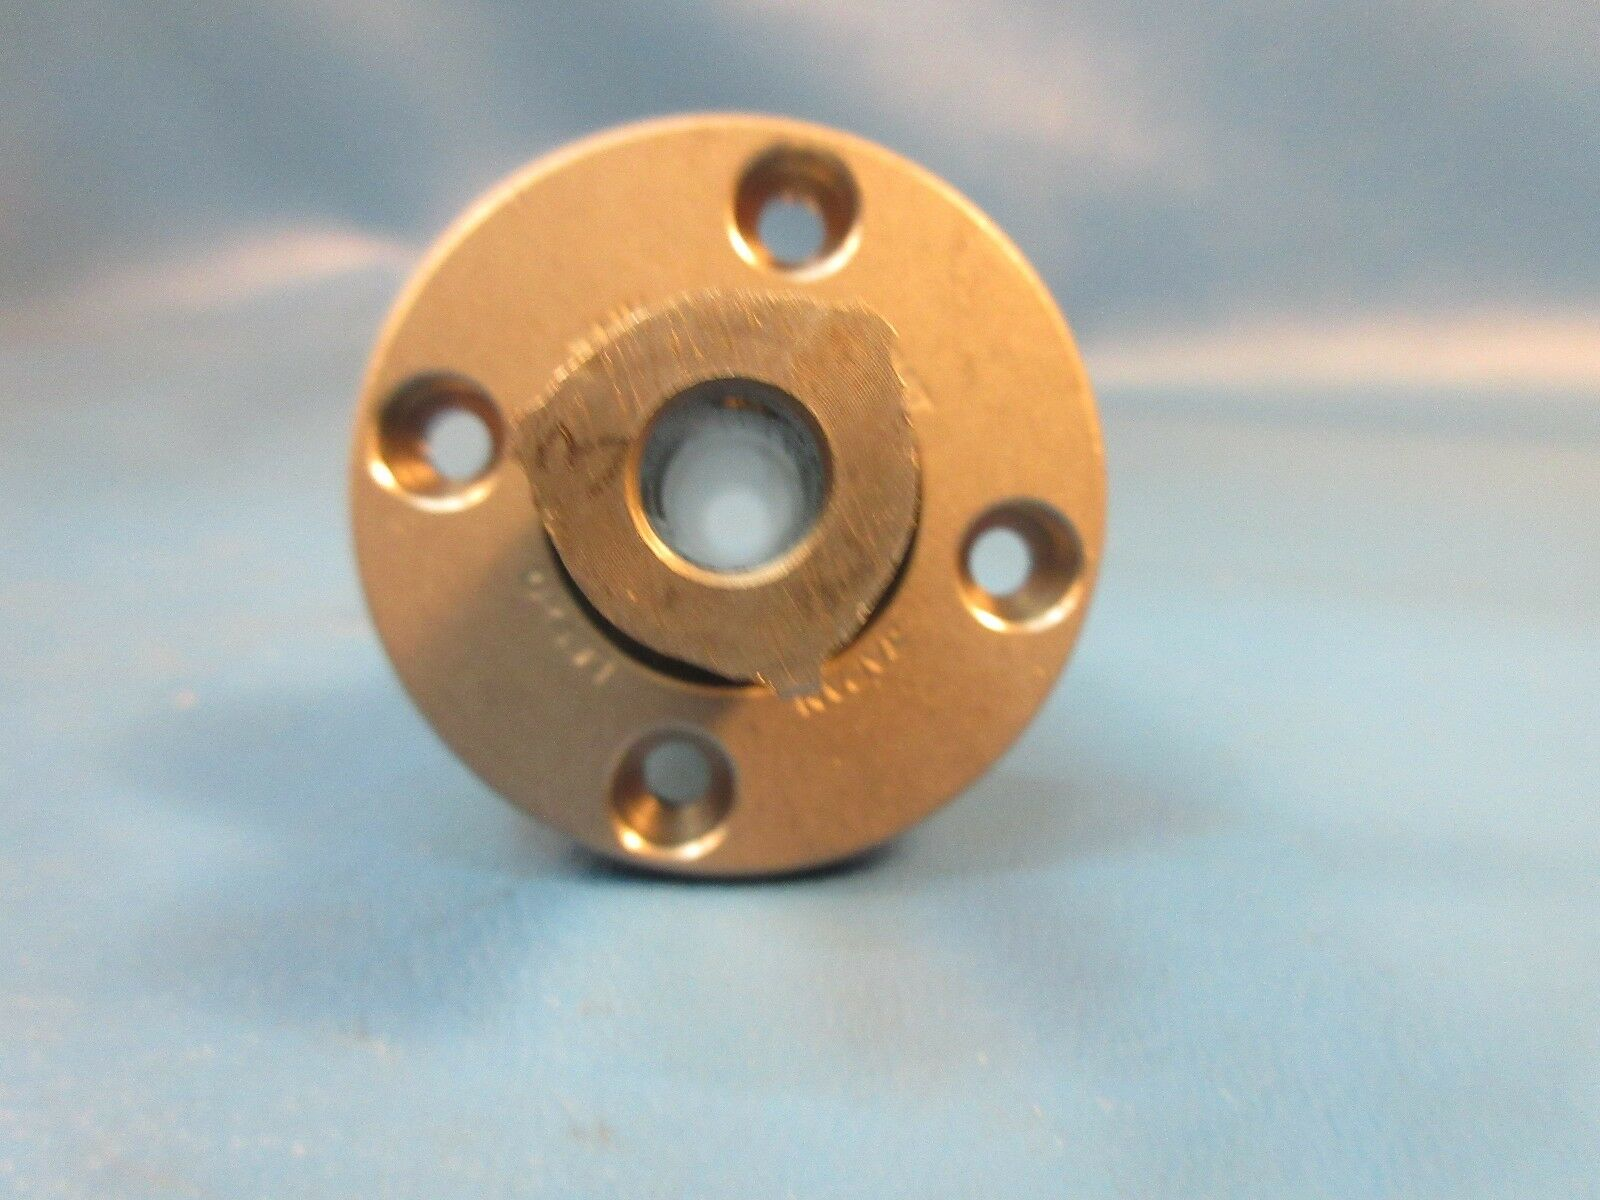 80 mm OD Contact Angle 25/° Angular Contact Light Preload 80 mm Width Barden Bearings 208HEUL Single Ball Bearing Spindle 40 mm ID